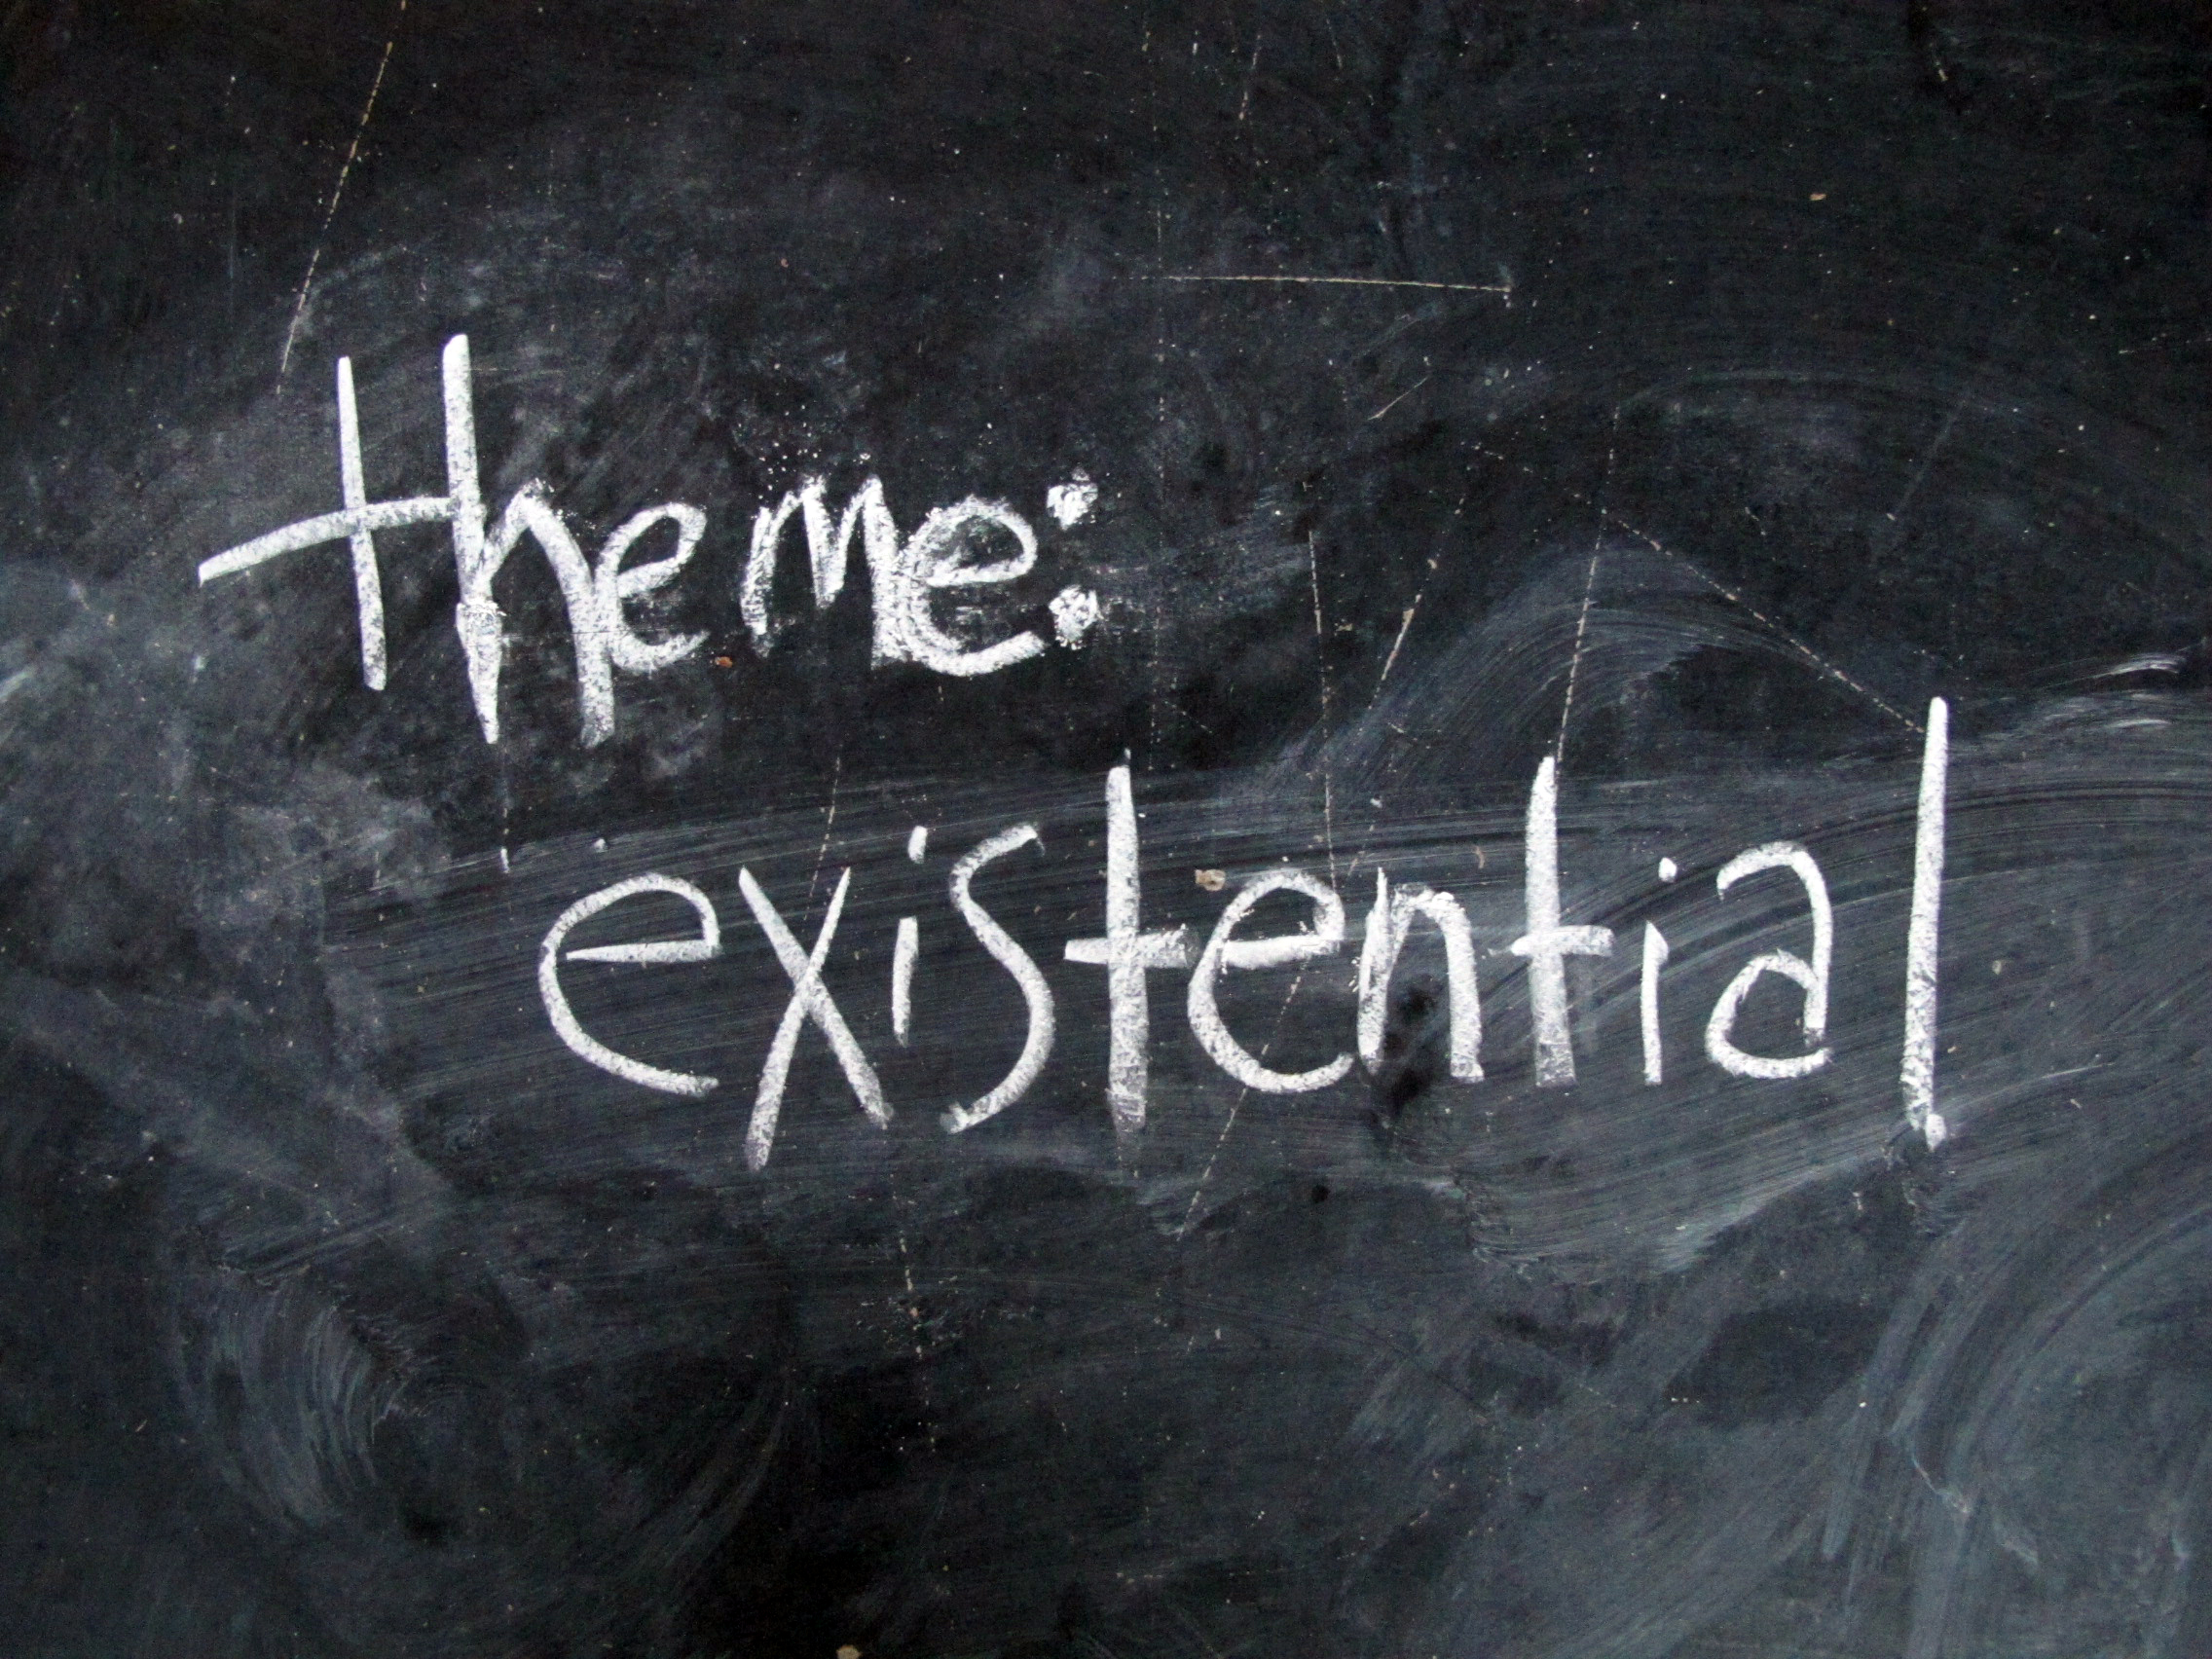 themes of existentialism Study flashcards on key themes in existentialism at cramcom quickly memorize the terms, phrases and much more cramcom makes it easy to get the grade you want.